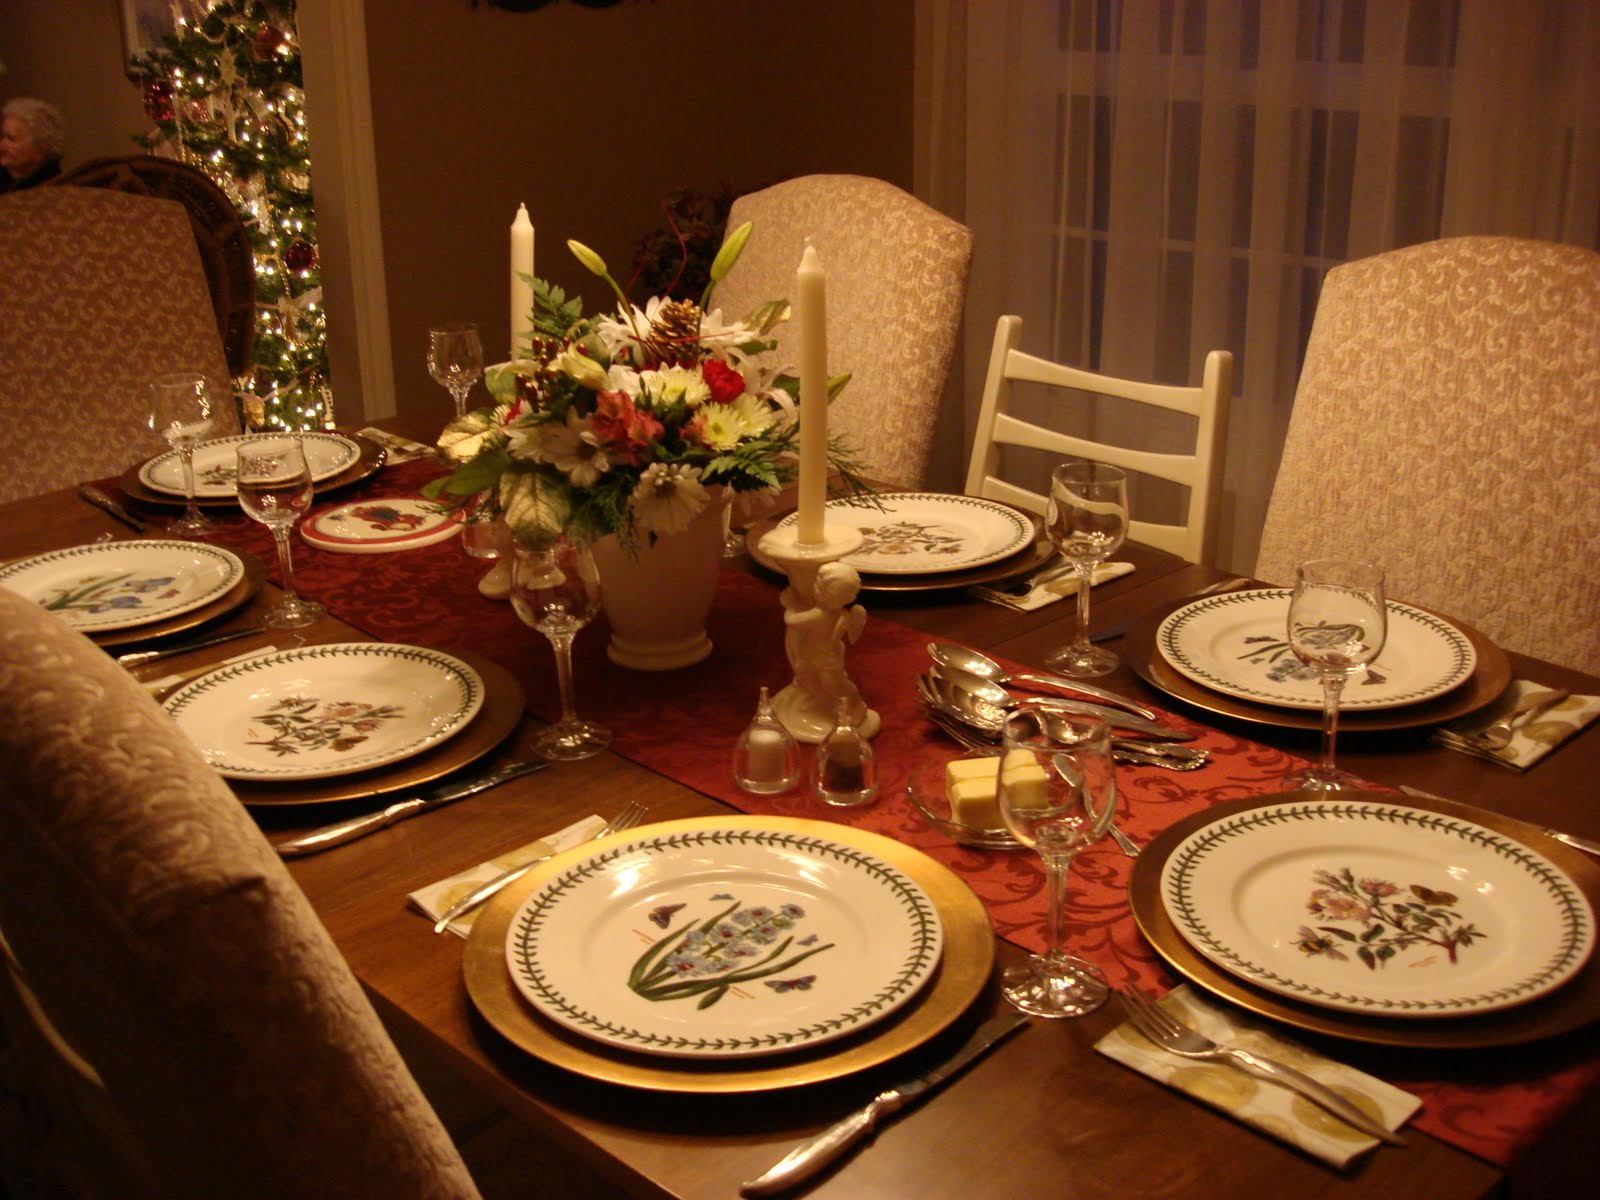 Dining table decorating ideas Dinner table setting pictures